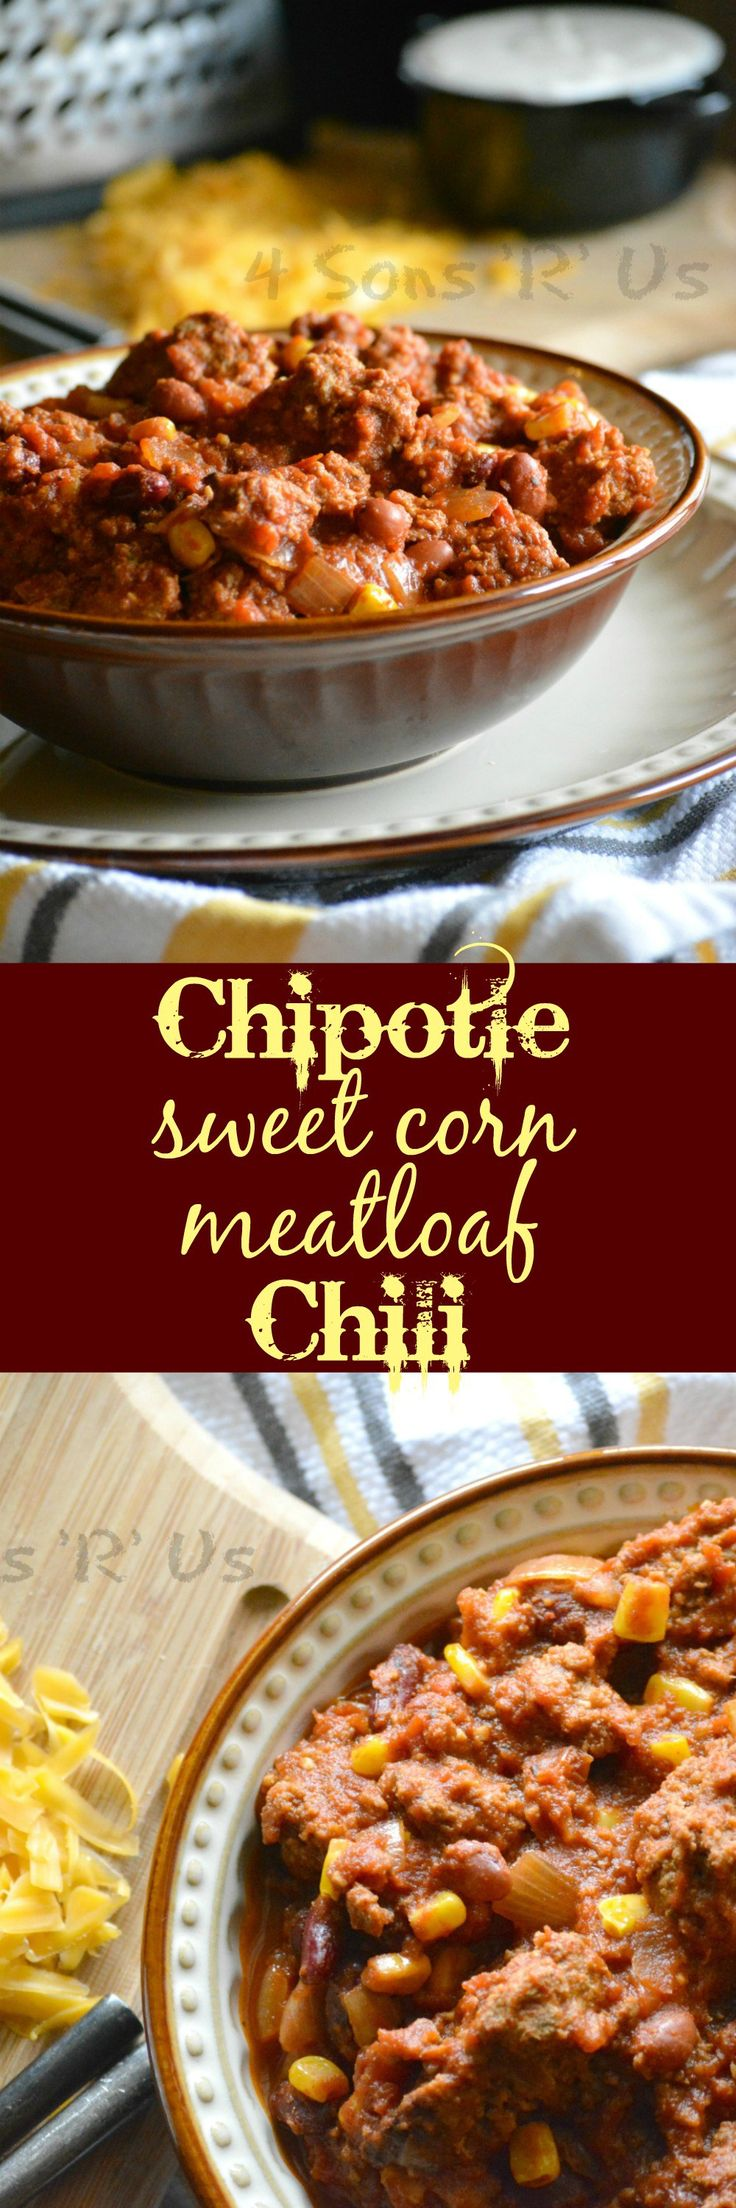 This recipe takes something as simple as leftovers and upgrades them into something simple, yet indulgent for dinner or even something hearty enough for a crowd on Game Day. Sweet corn, smoky chipotle seasoning, and chunks of your favorite leftover meatloaf combine with traditional ingredients for a chili that will really 'bowl' you over.